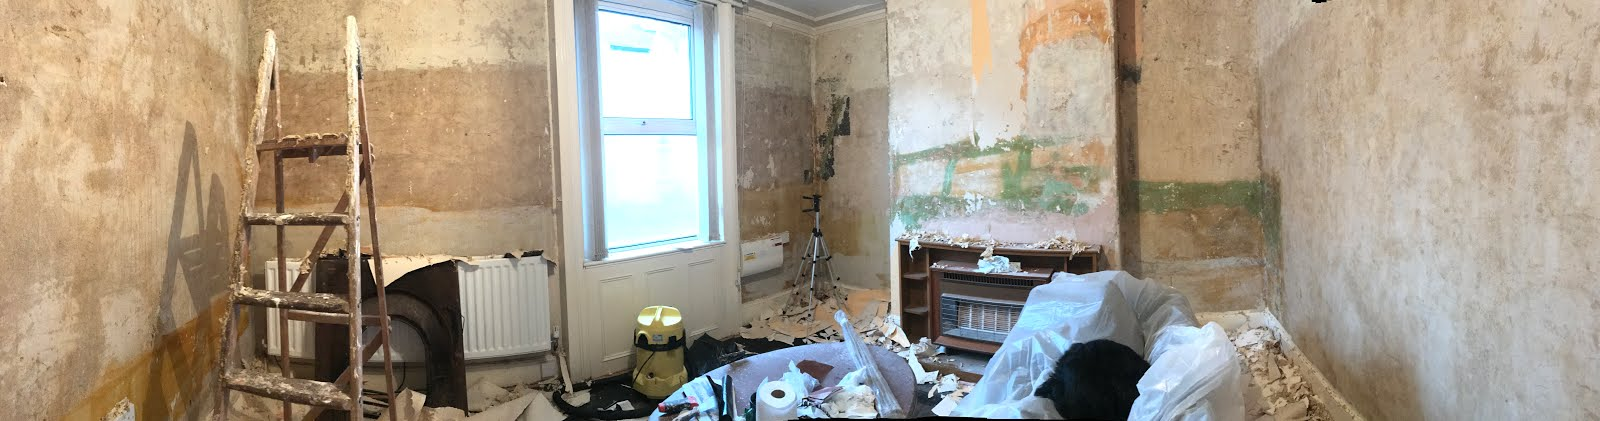 removing wallpaper renovation blog